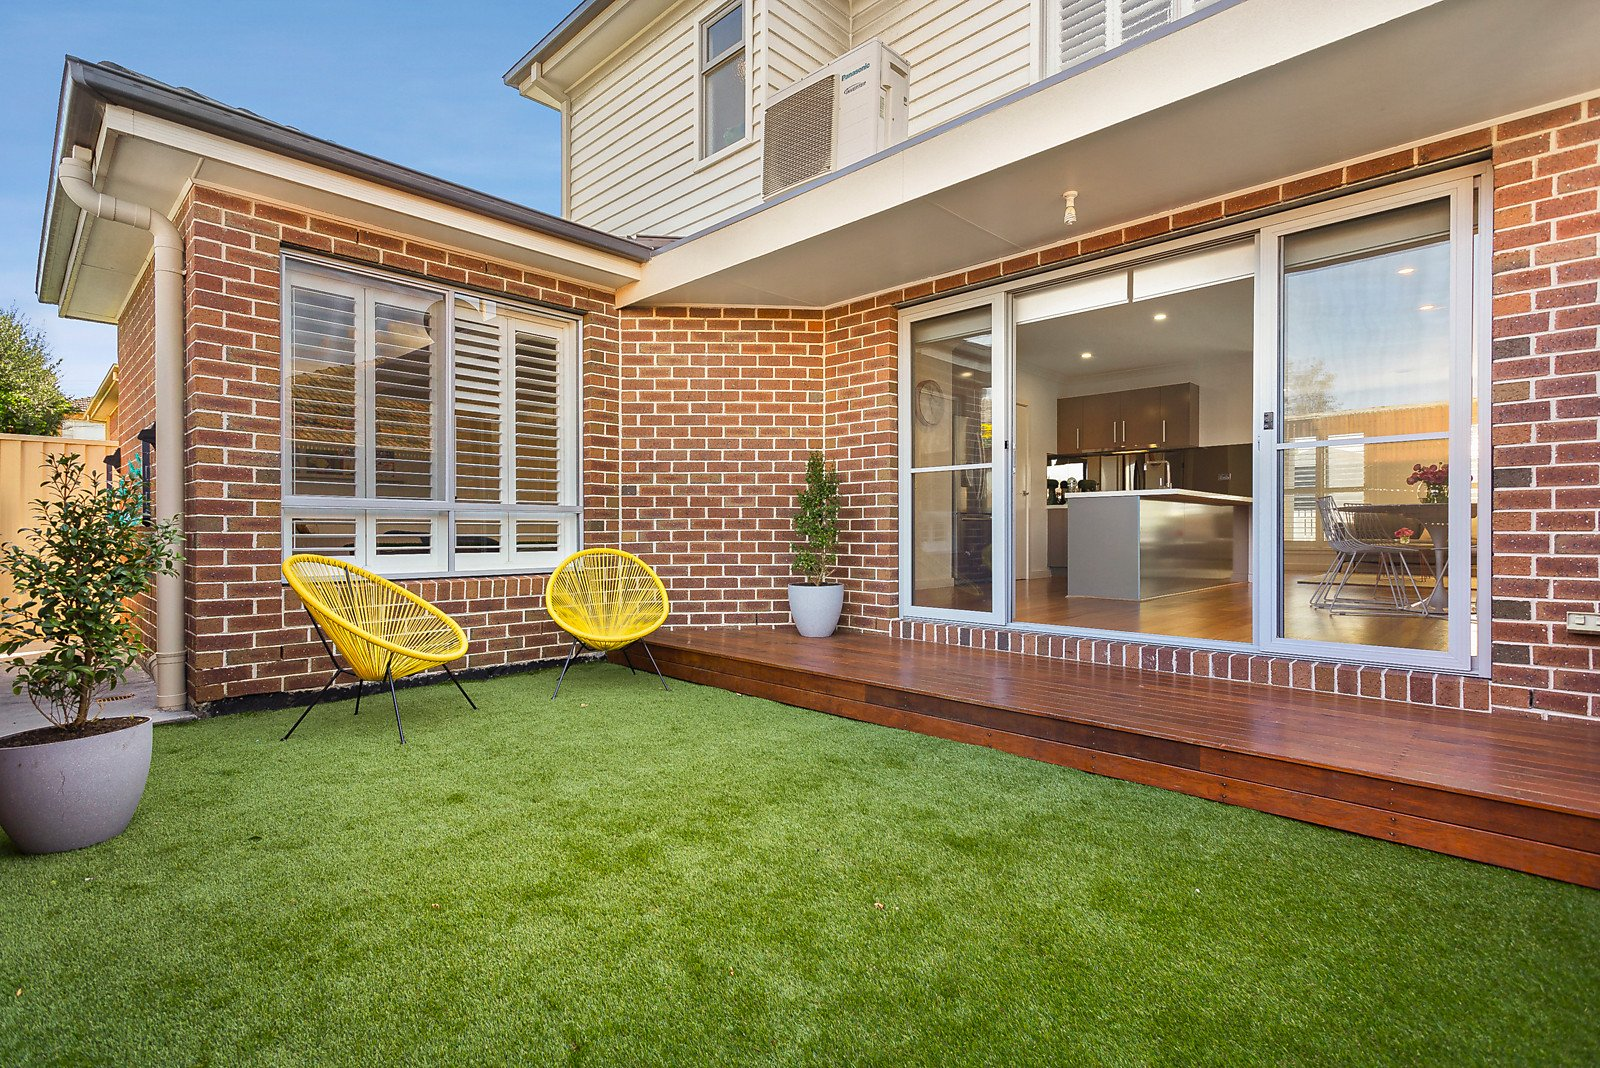 1A Harold Street, Ascot Vale, VIC, 3032 image 10